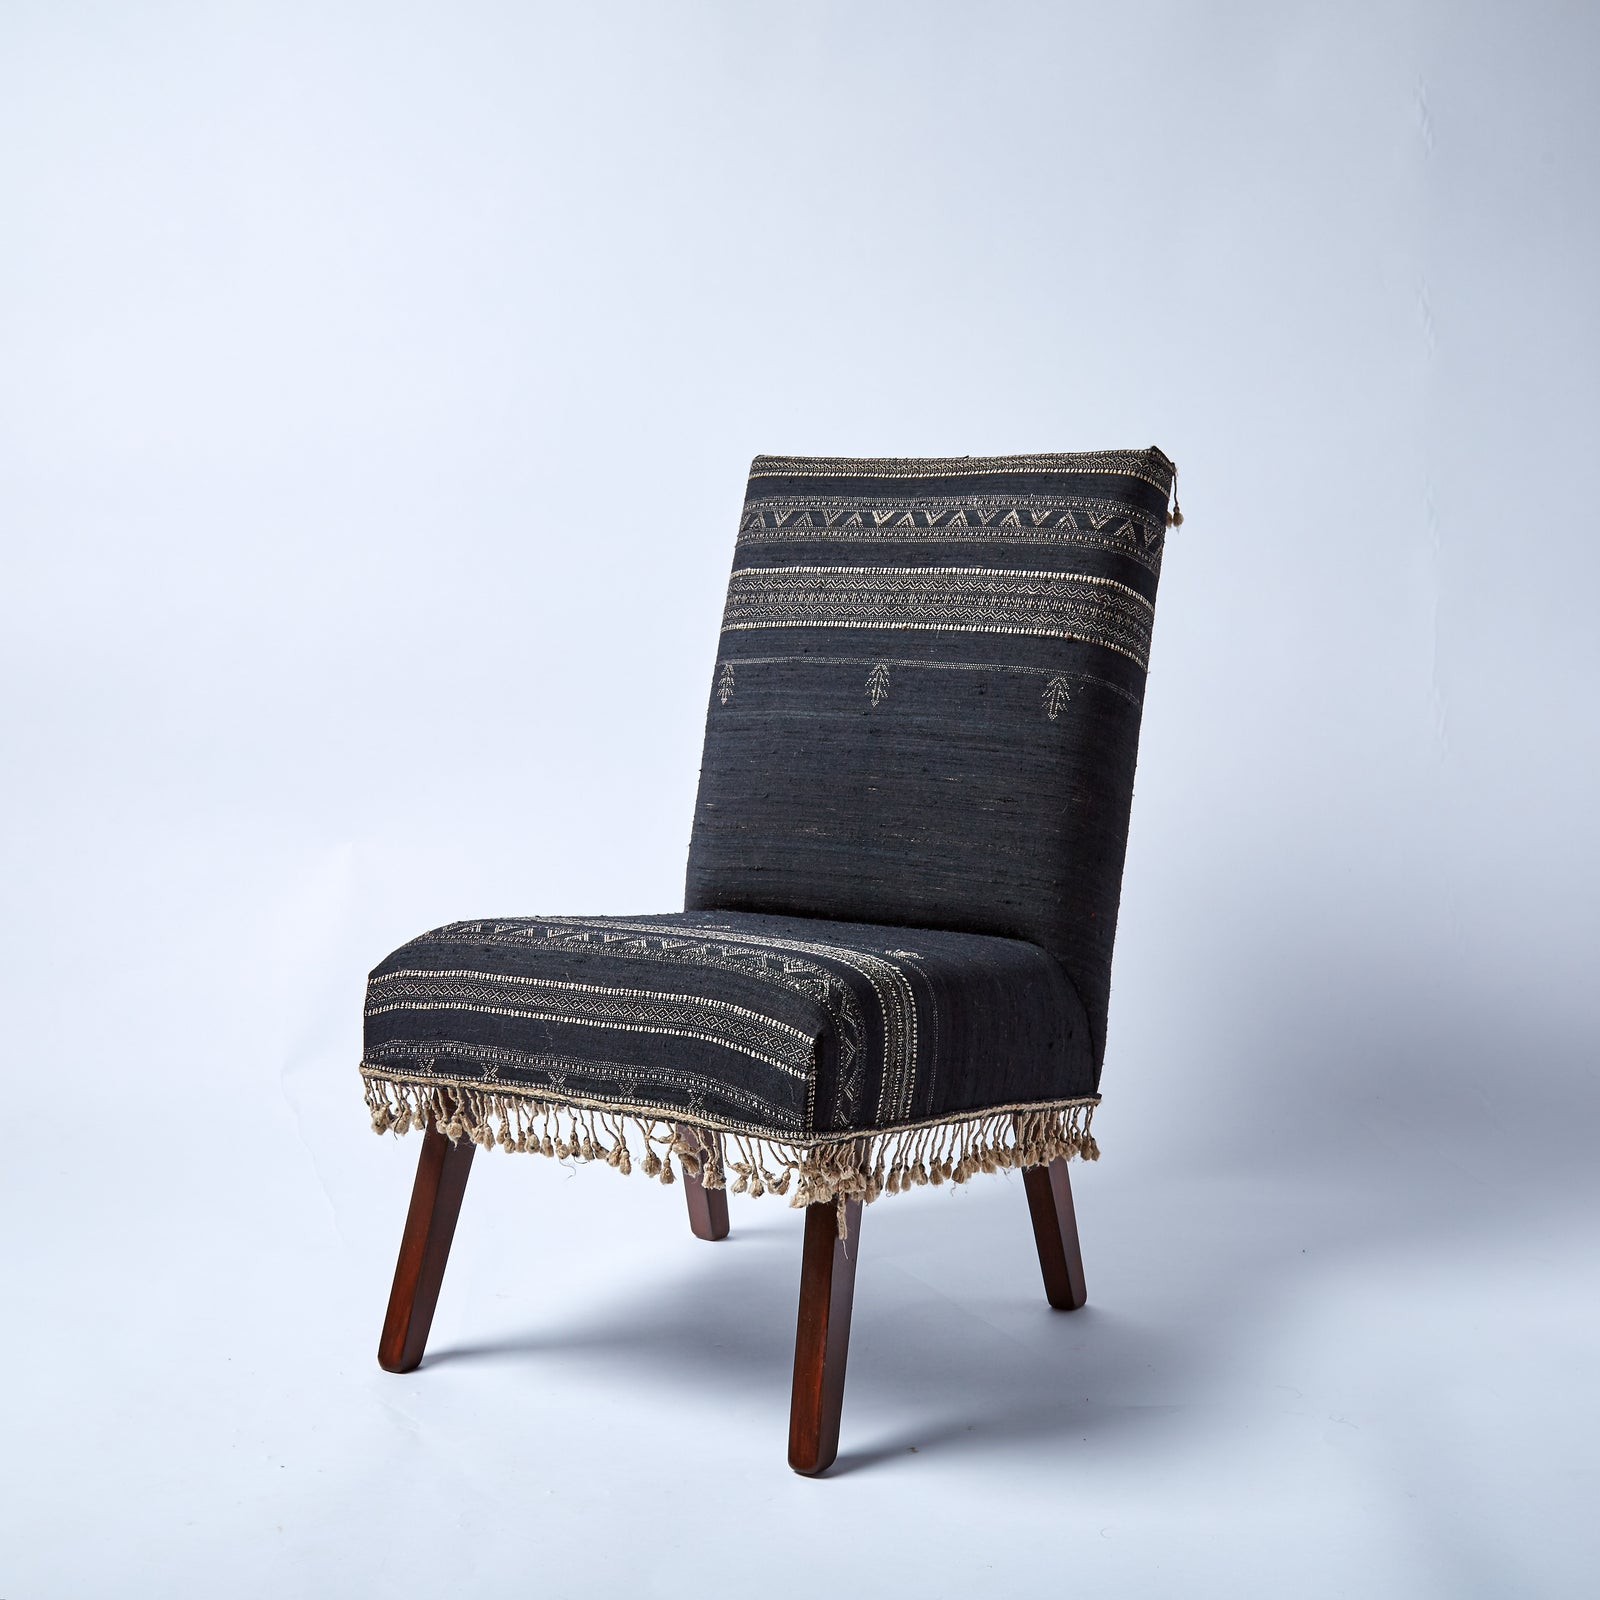 Elegant vintage cocktail chair, reupholstered in striking contemporary but traditional hand-woven wool/silk blend fabric.